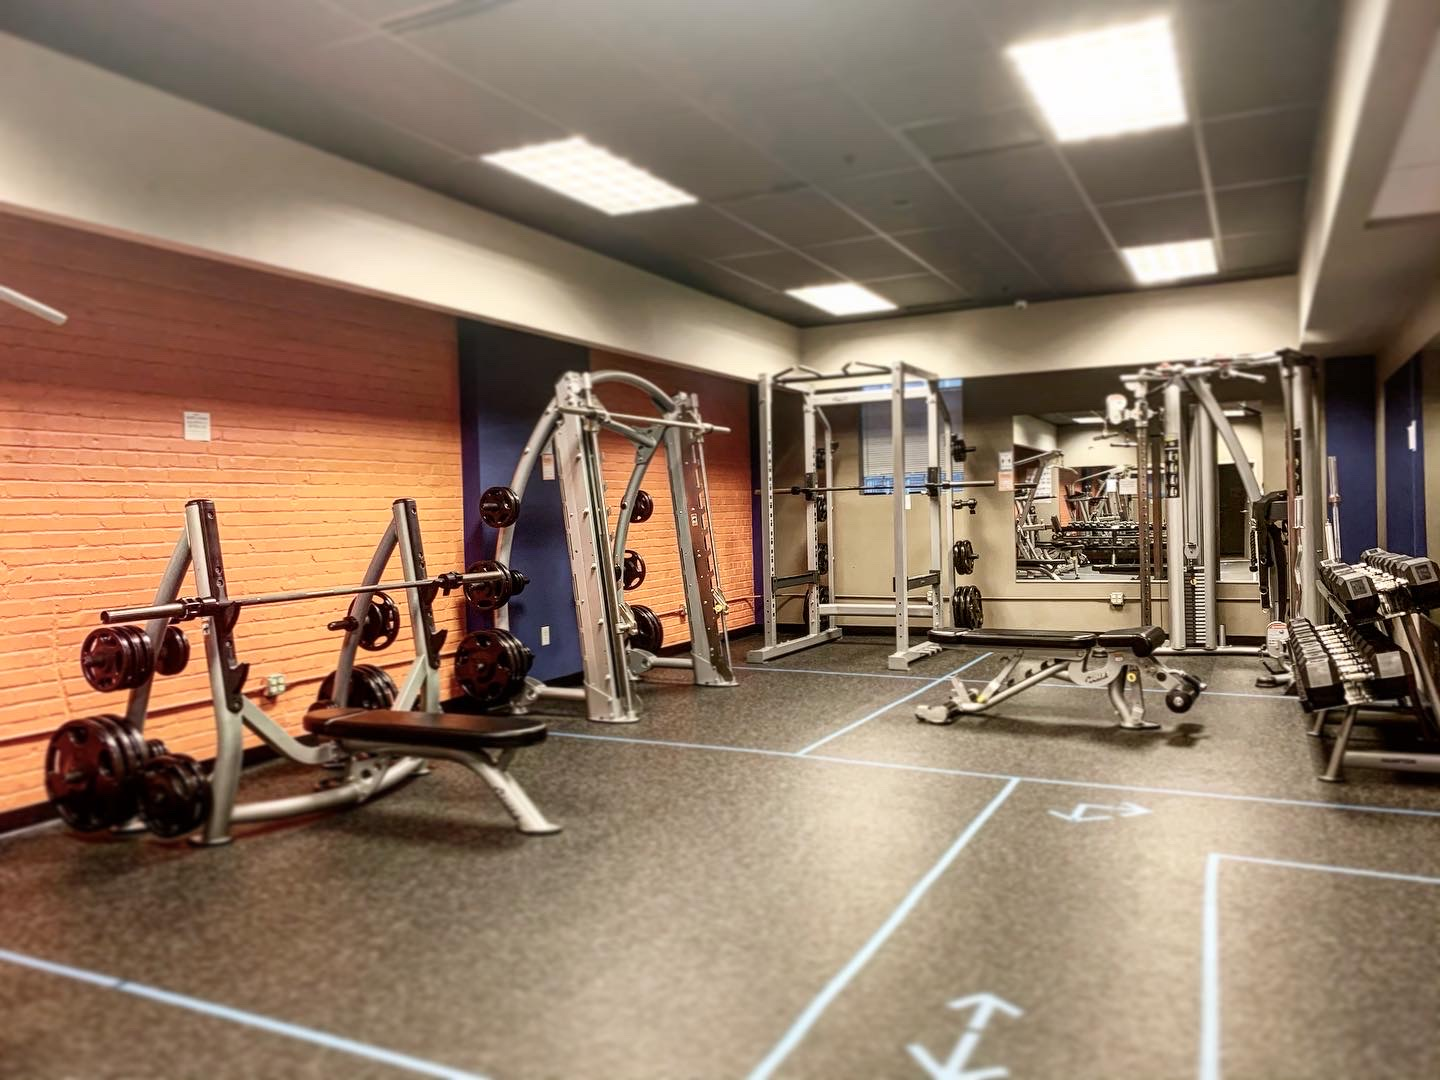 Free weights and weight machines